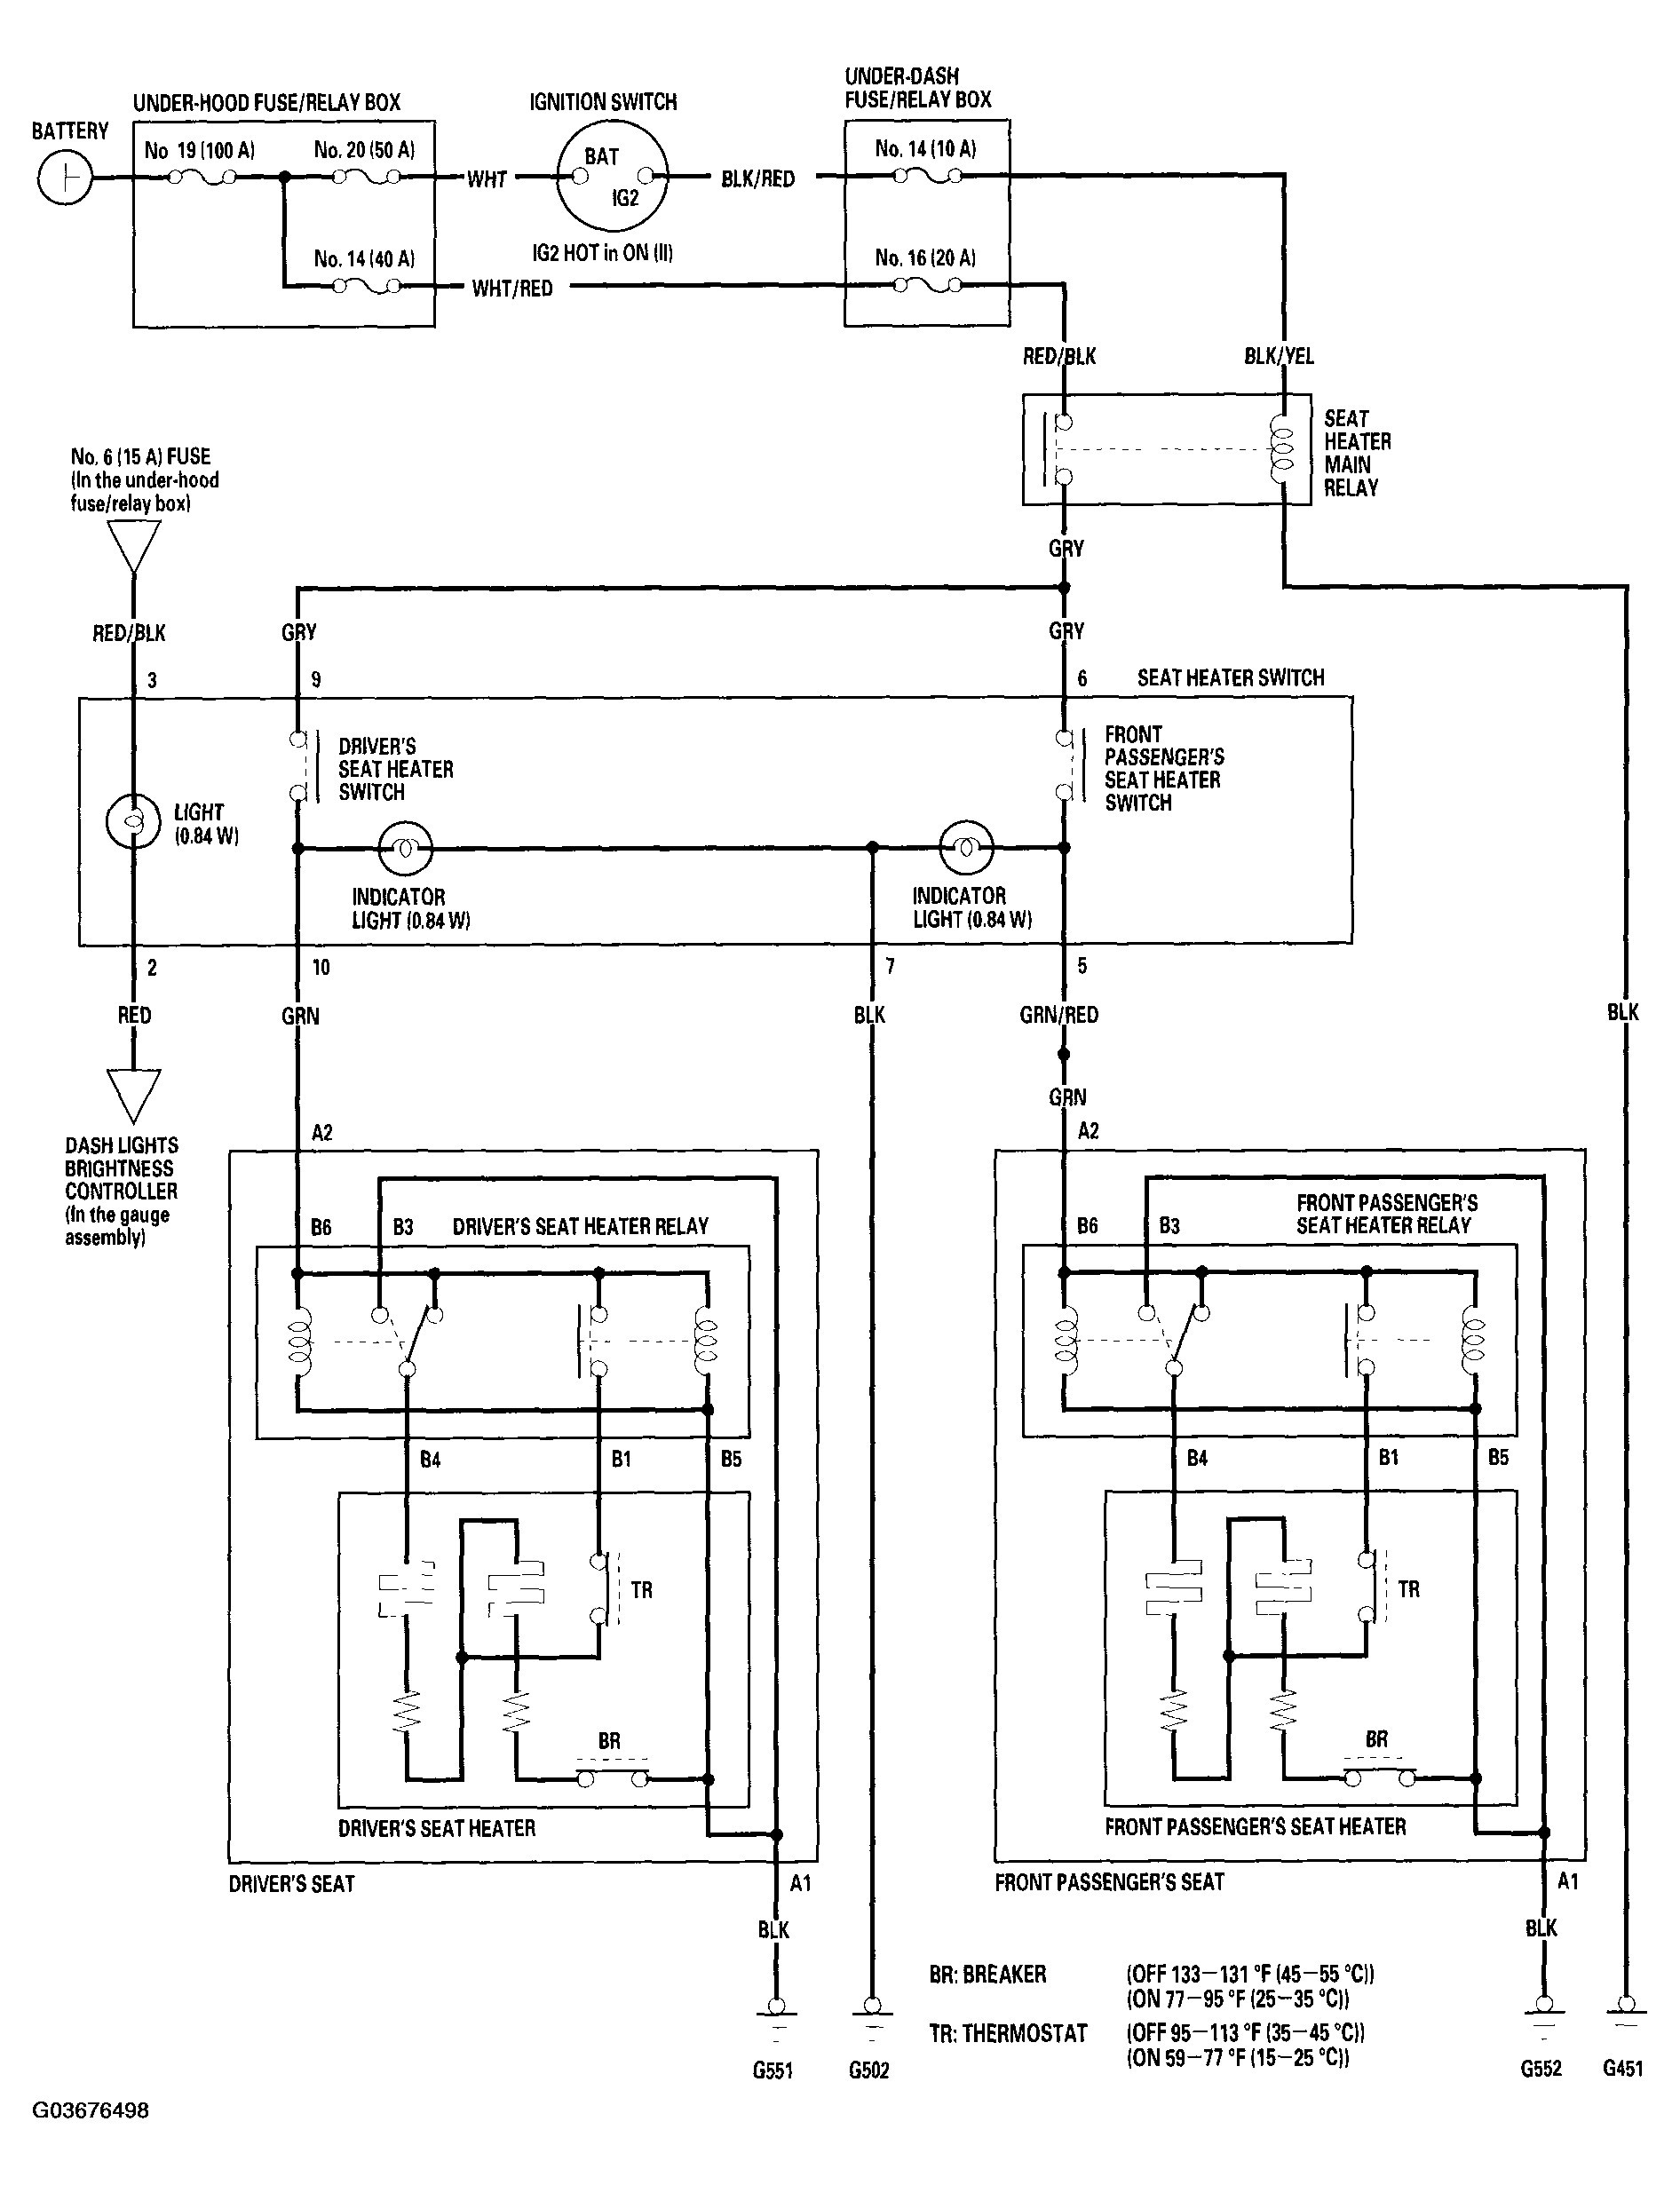 hight resolution of 2000 honda civic engine diagram 1994 honda accord engine diagram cr v fuse box diagram besides